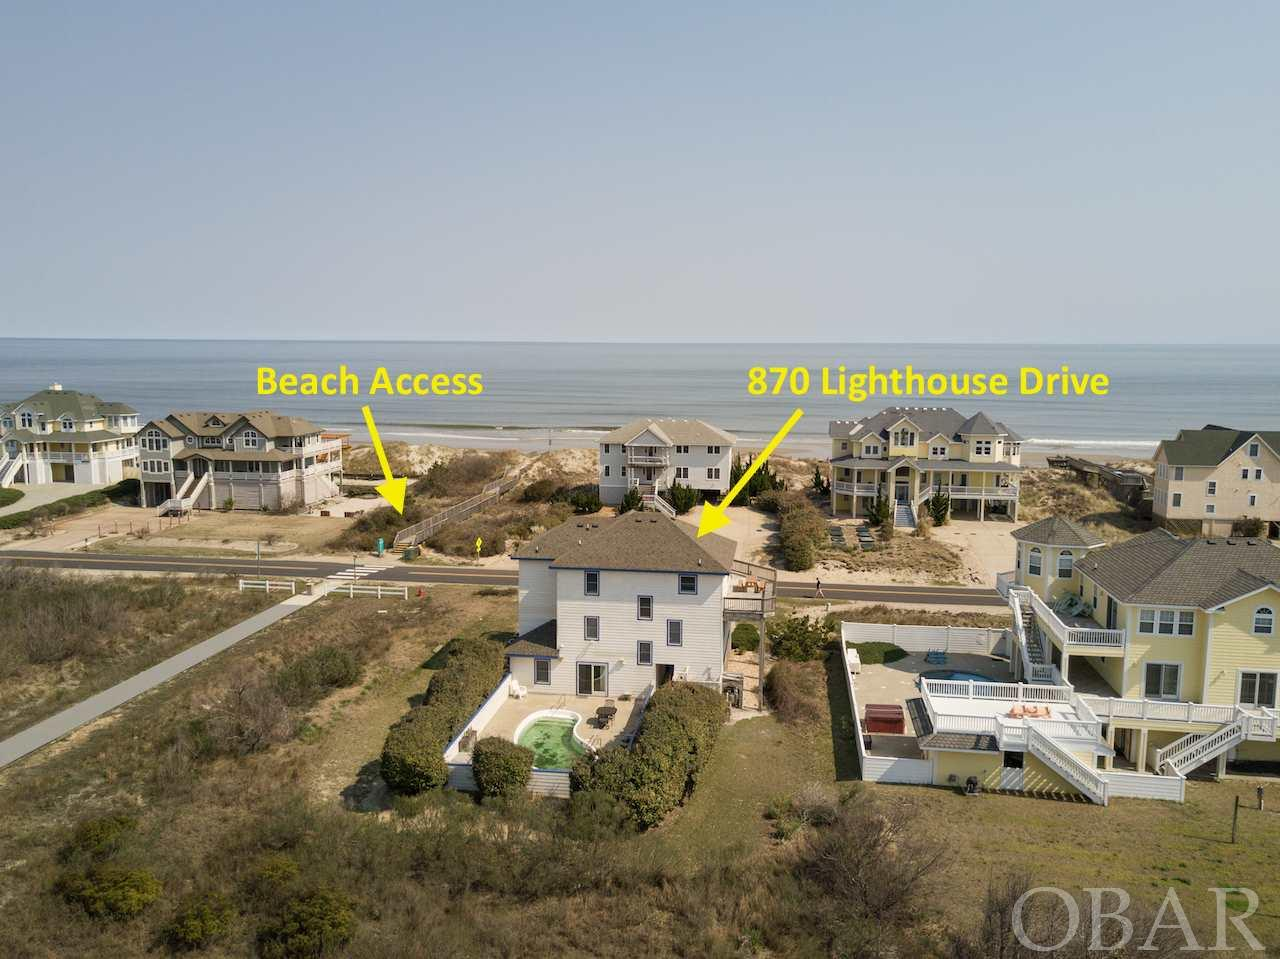 870 Lighthouse Drive,Corolla,NC 27927,6 Bedrooms Bedrooms,5 BathroomsBathrooms,Residential,Lighthouse Drive,101833